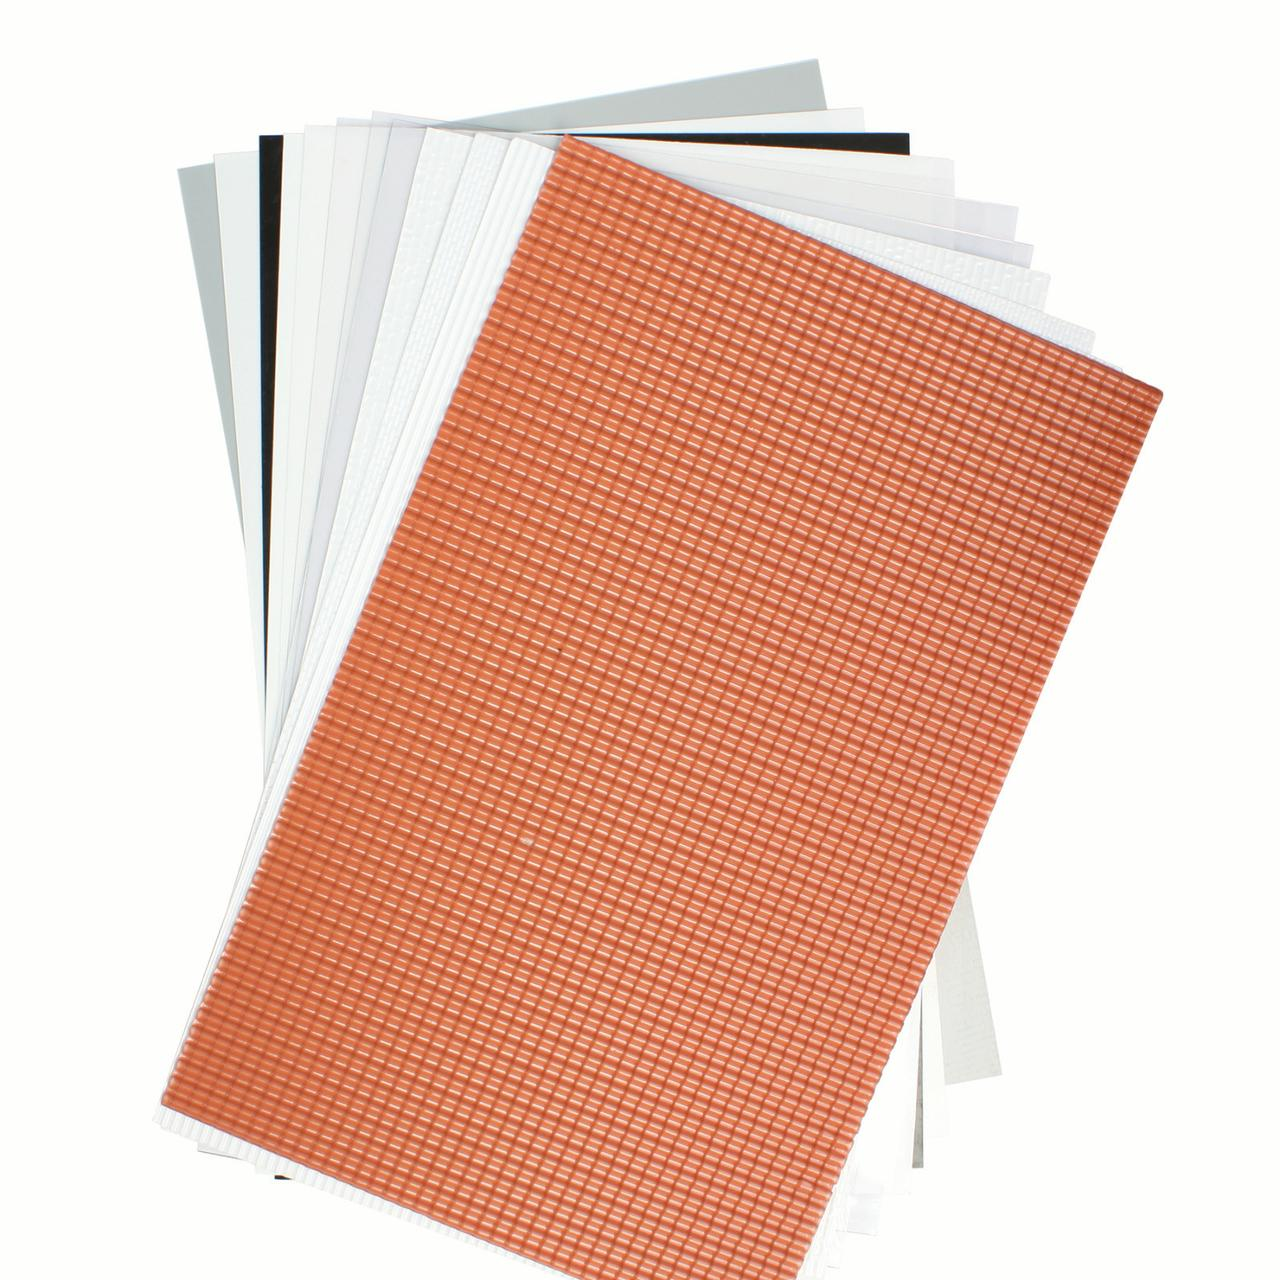 Wee Scapes Plastic Sheets, 7.5in x 12in, 2/Pkg., Scalloped Edge Tile